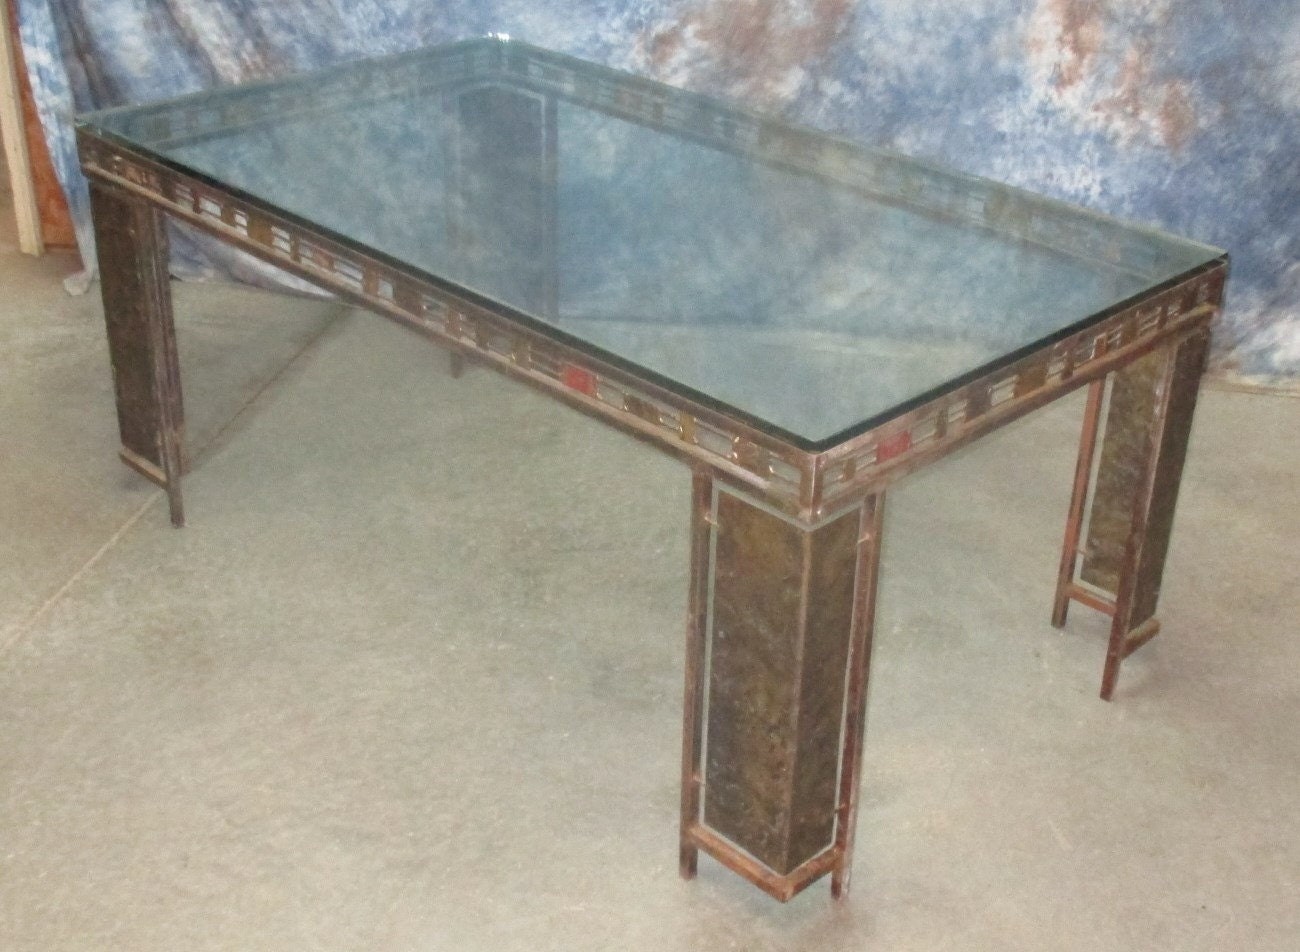 38 x 68 glass top table dining room kitchen mid century danish